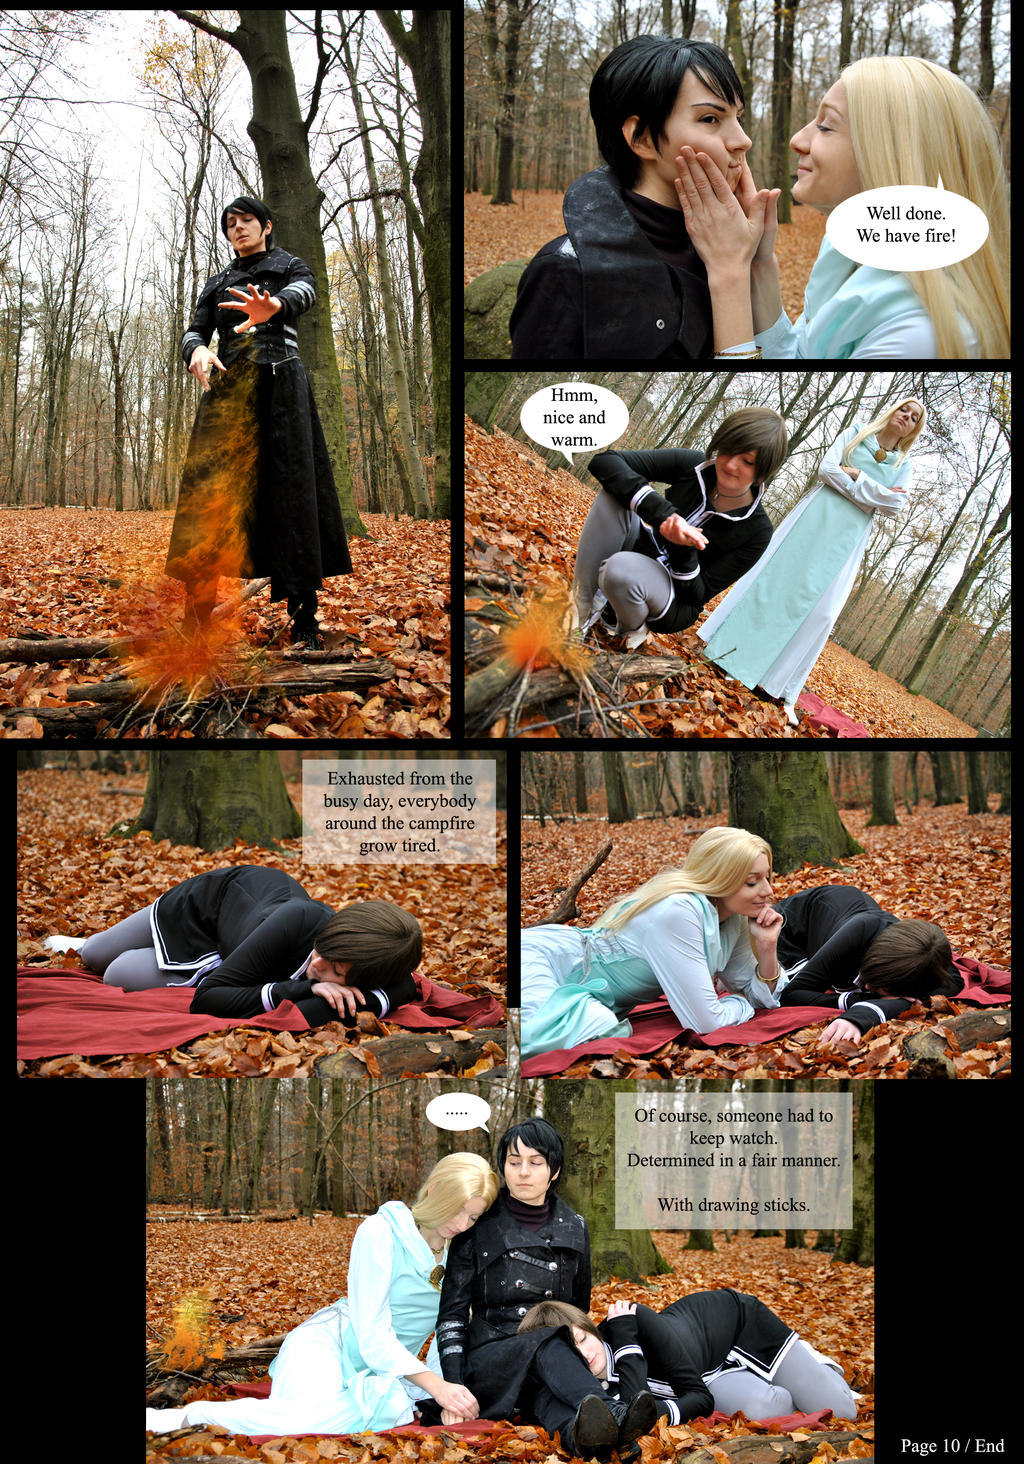 RoR Cosplay-Photostory Page 10/End by Eninaj27